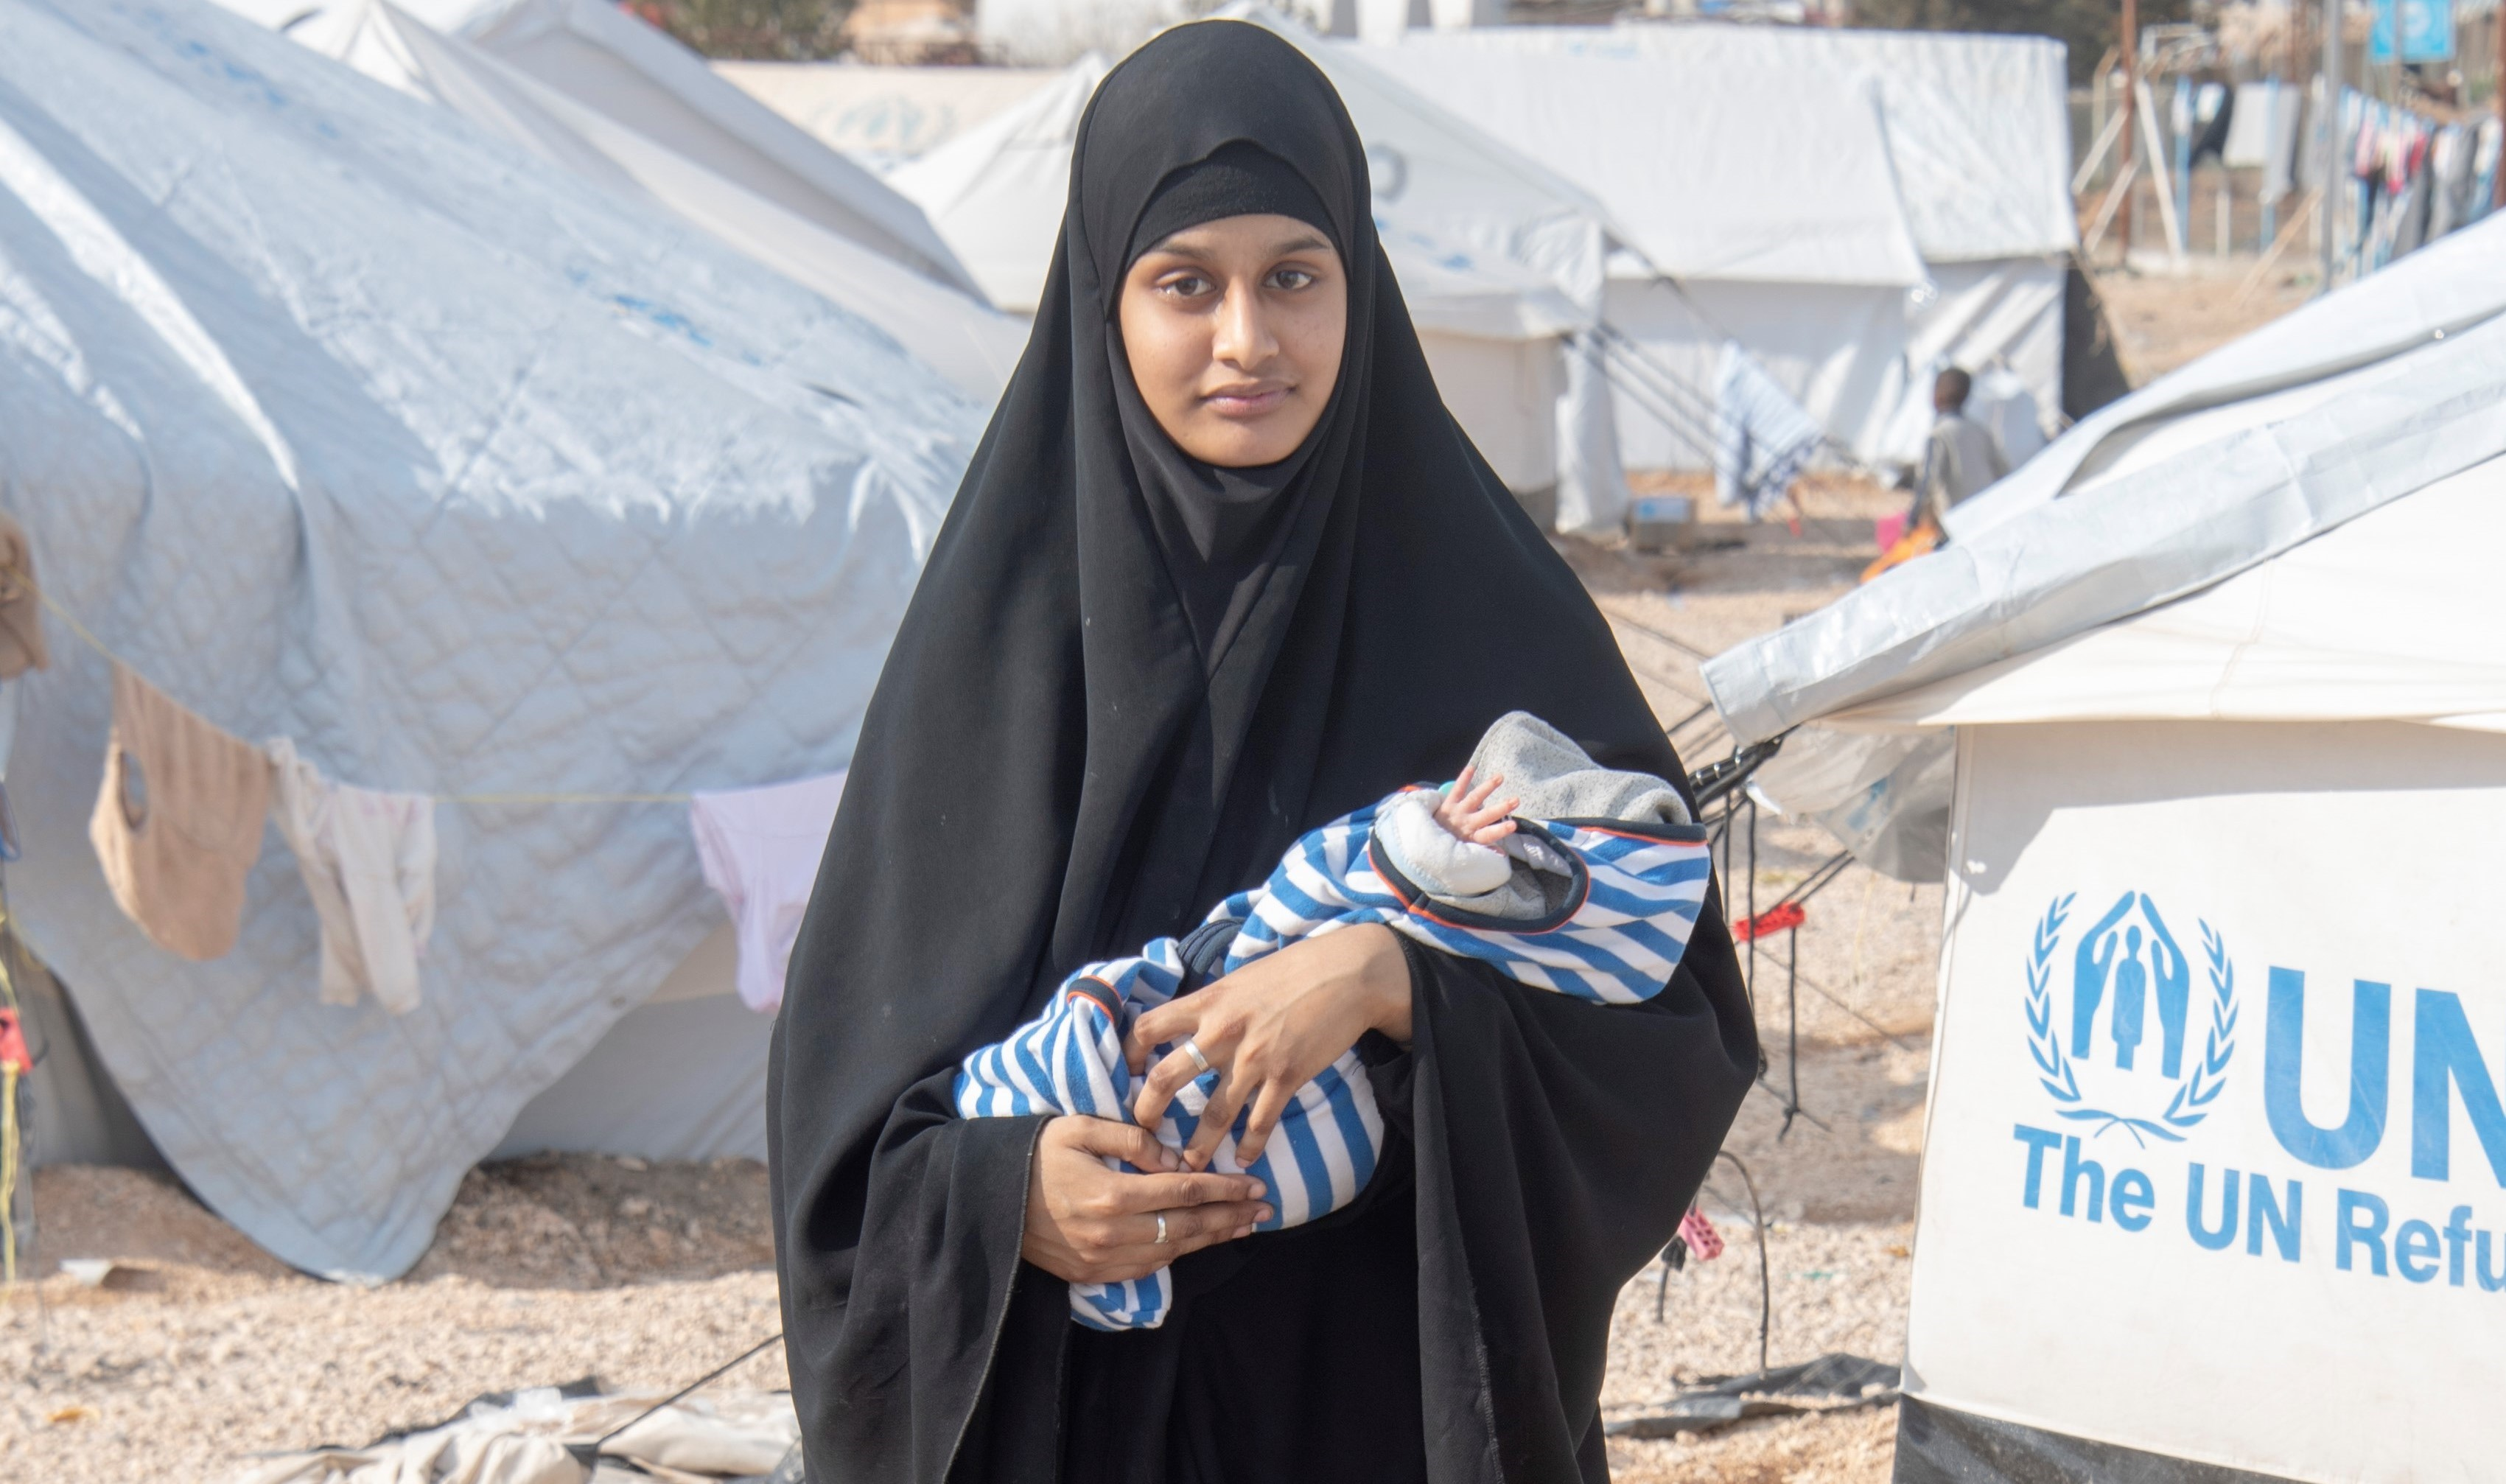 Shamima Begum is still in the camp in Syria